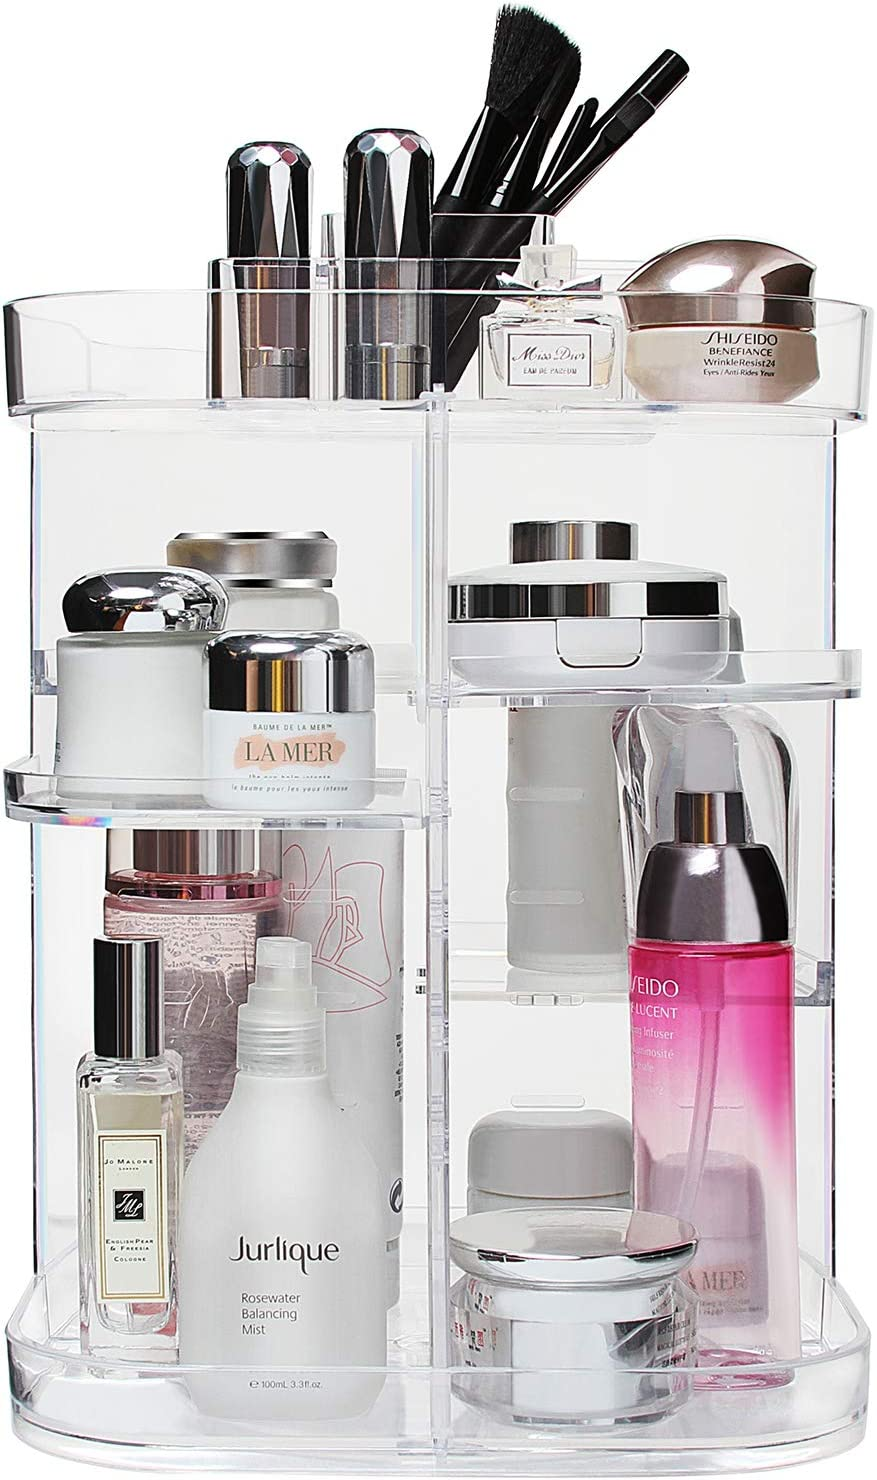 Boxalls Makeup Organizer 360 Degree Rotating Storage, Multi-Function Clear Carousel Cosmetic Organizer with 5 Layers Large Capacity, Great for Countertop Vanity Bathroom Bedroom, Square Shape: Home Improvement